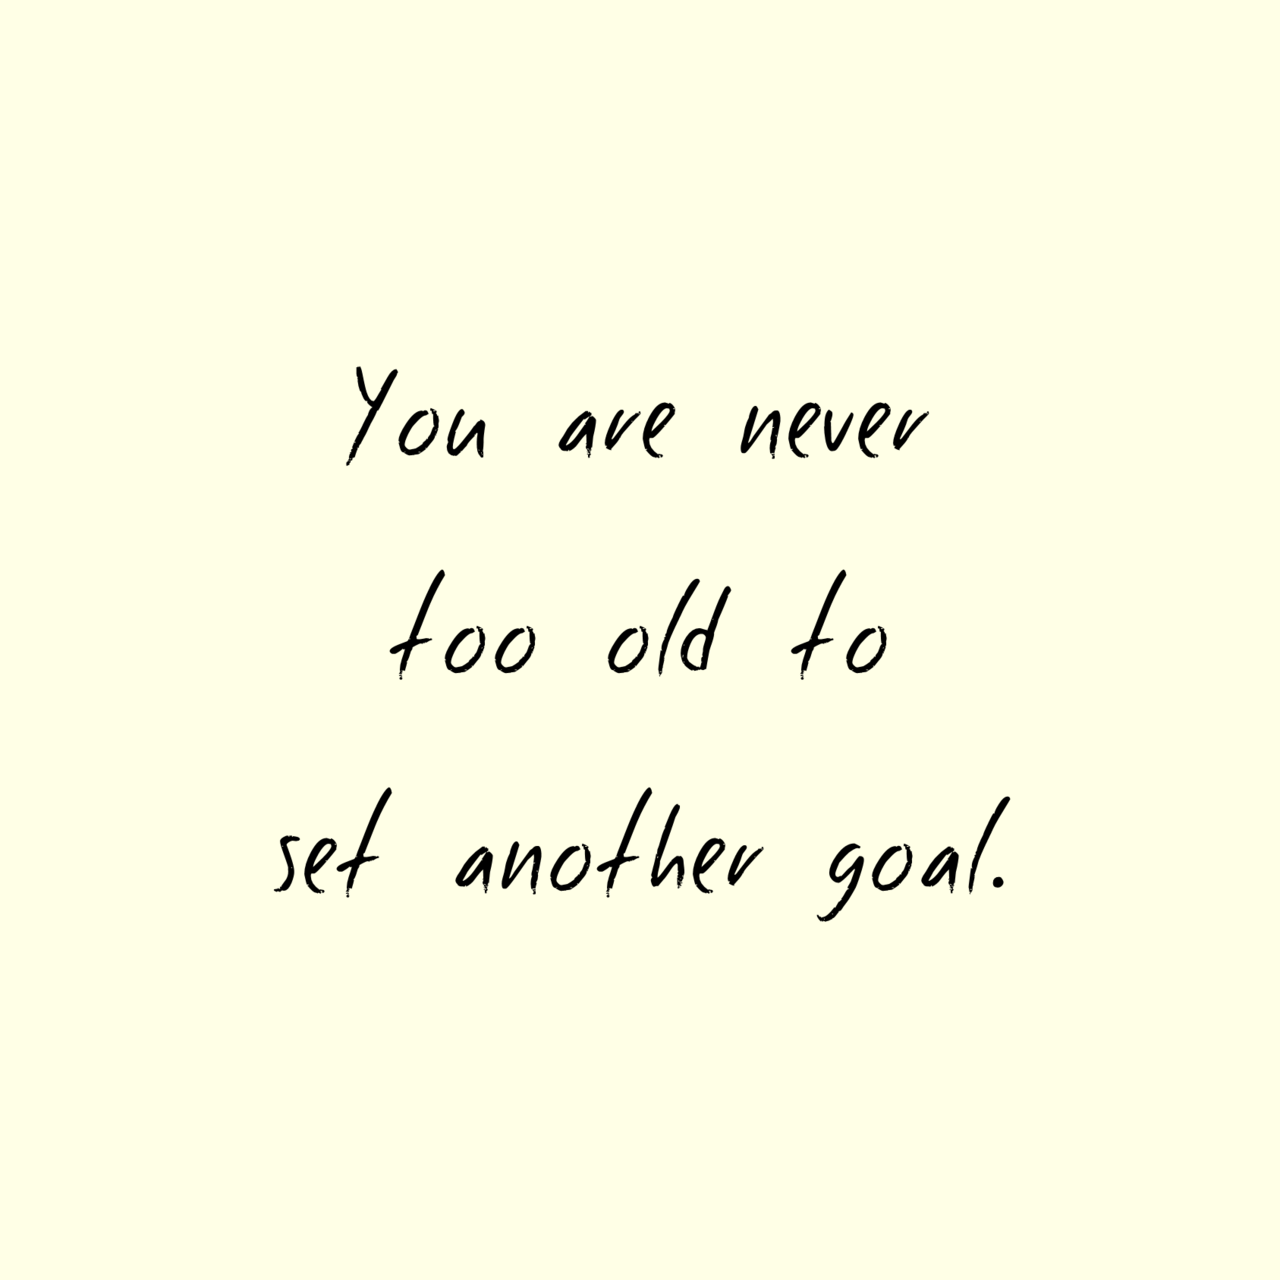 goal, too old and old